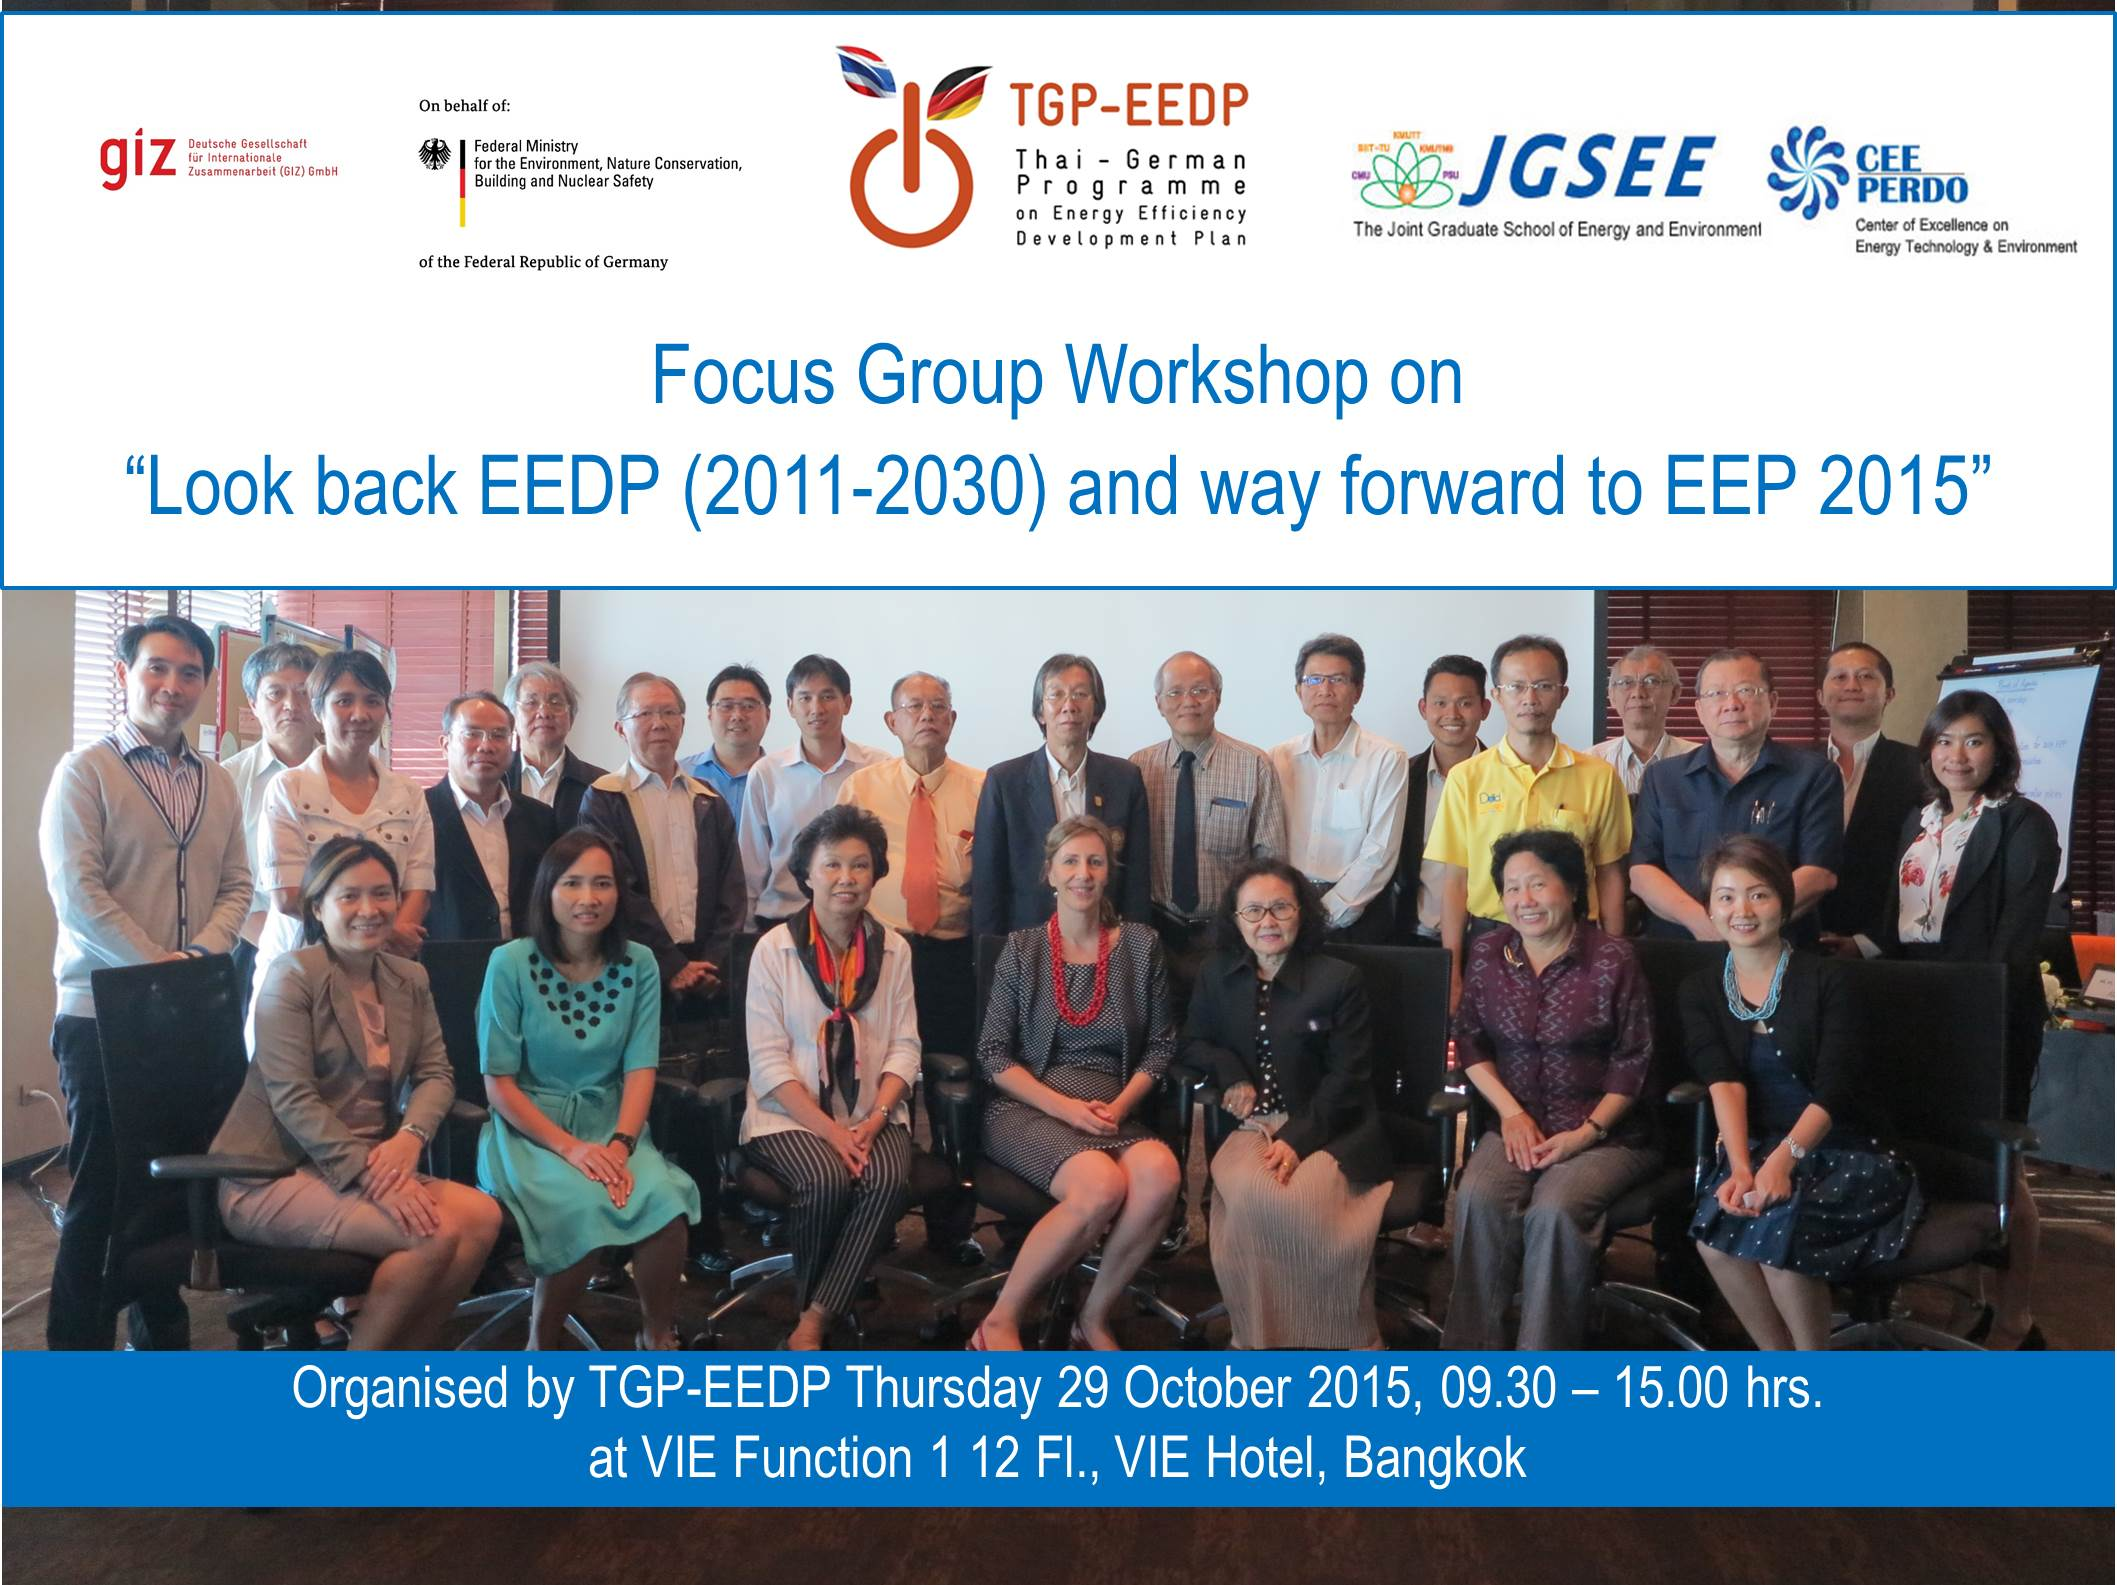 Focus Group Meeting on 'Look Back EEDP (2011-2030) and Way Forward to EEP 2015'